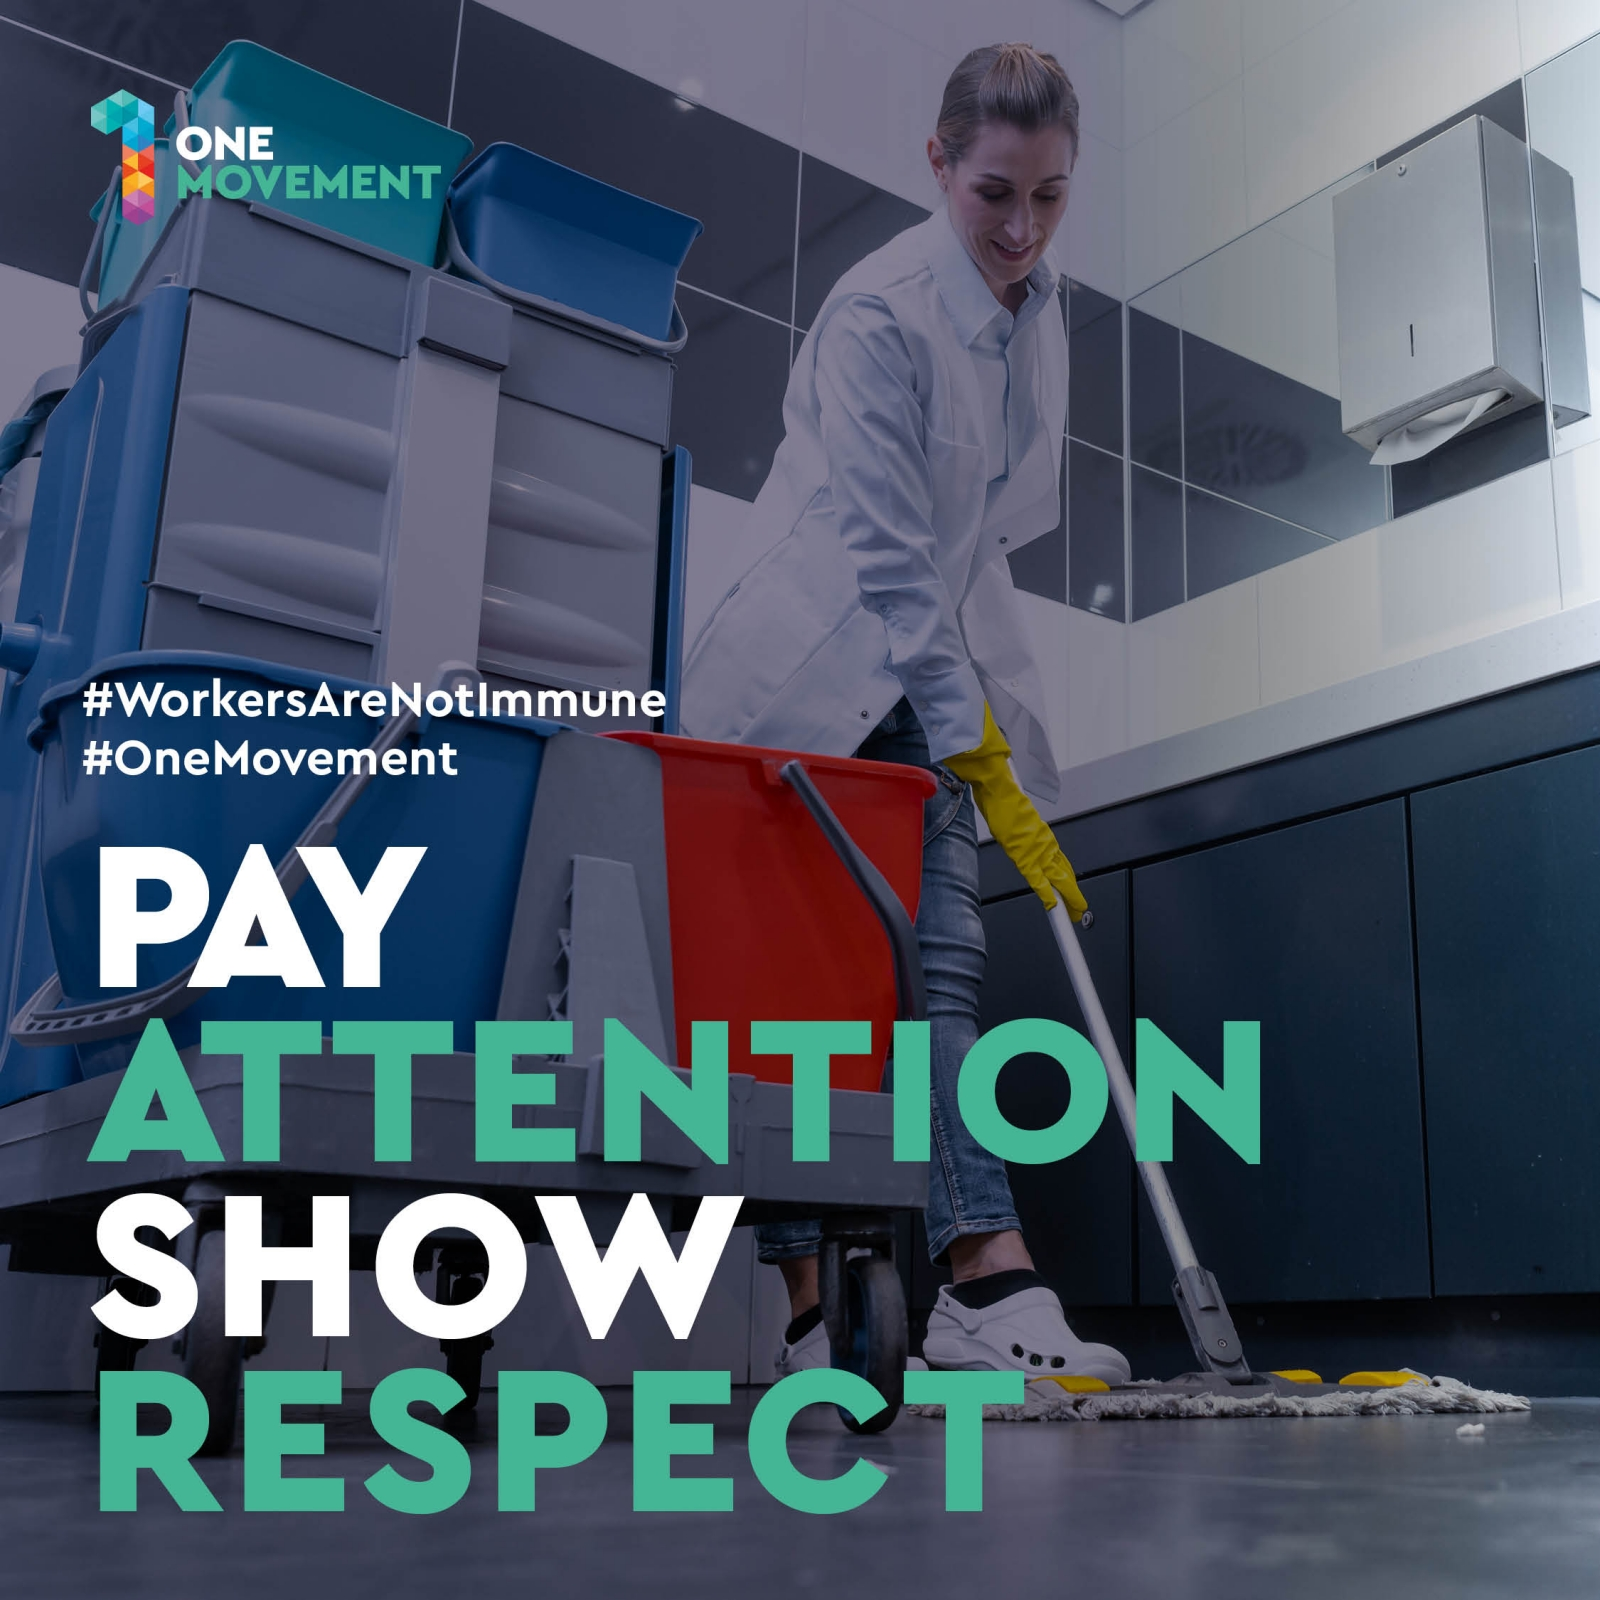 Pay attention show respect